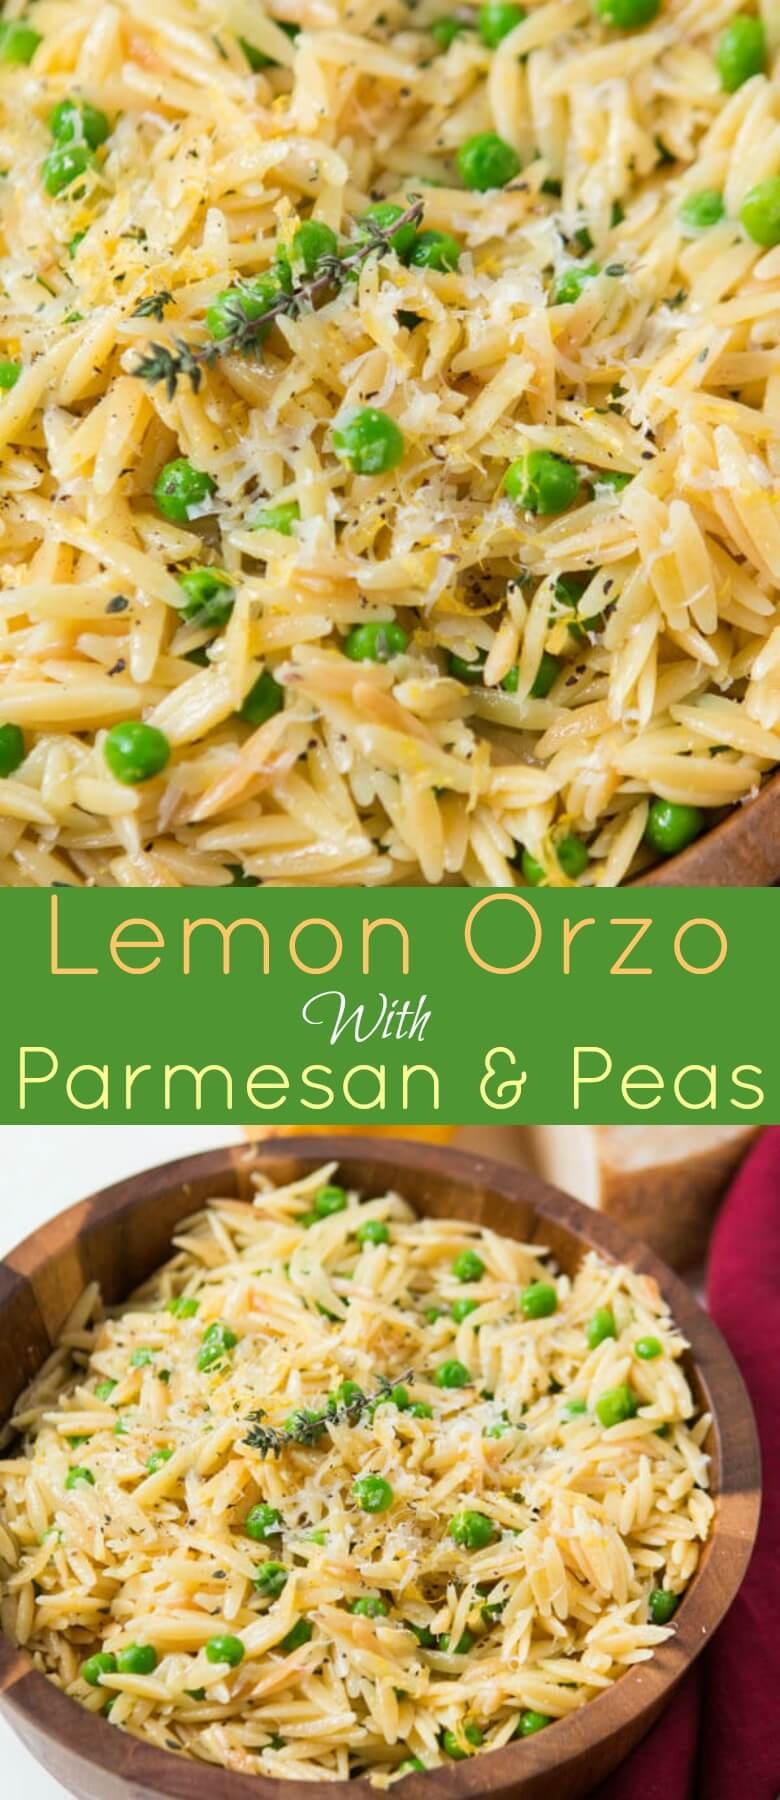 ... spring like this Quick and easy lemon orzo with parmesan and peas